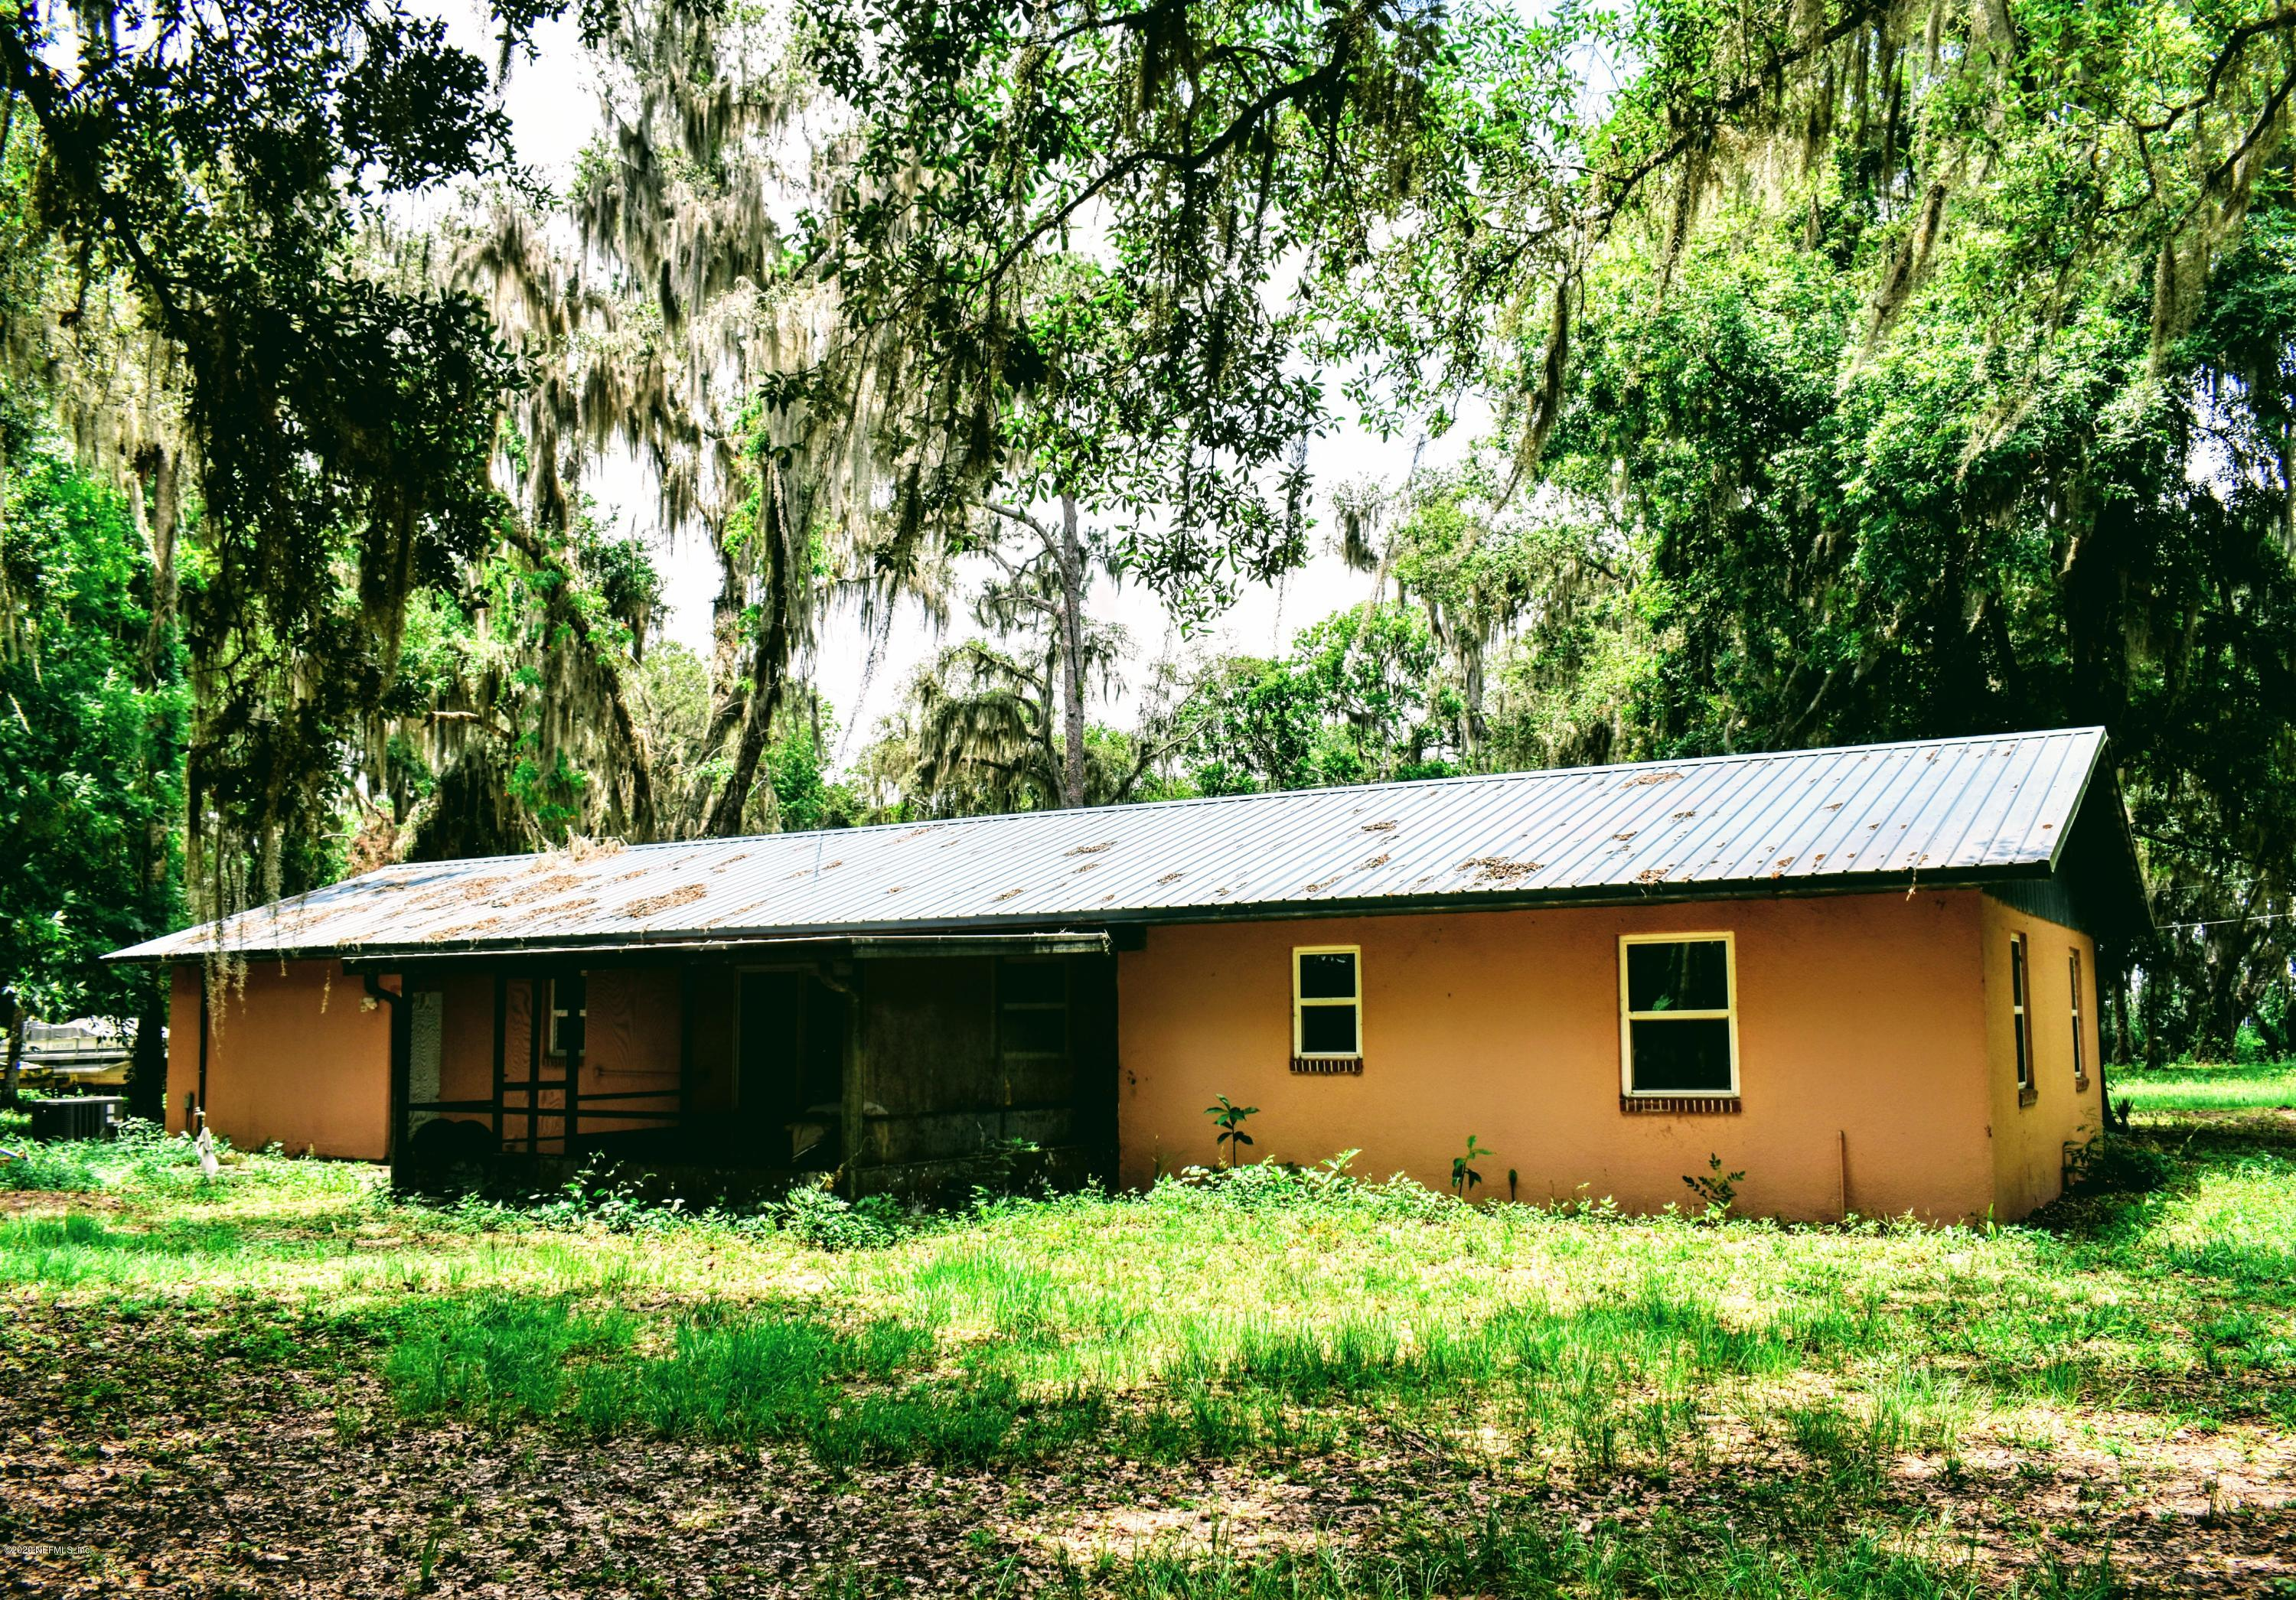 391 RIVER, EAST PALATKA, FLORIDA 32131, 4 Bedrooms Bedrooms, ,3 BathroomsBathrooms,Residential,For sale,RIVER,1058014